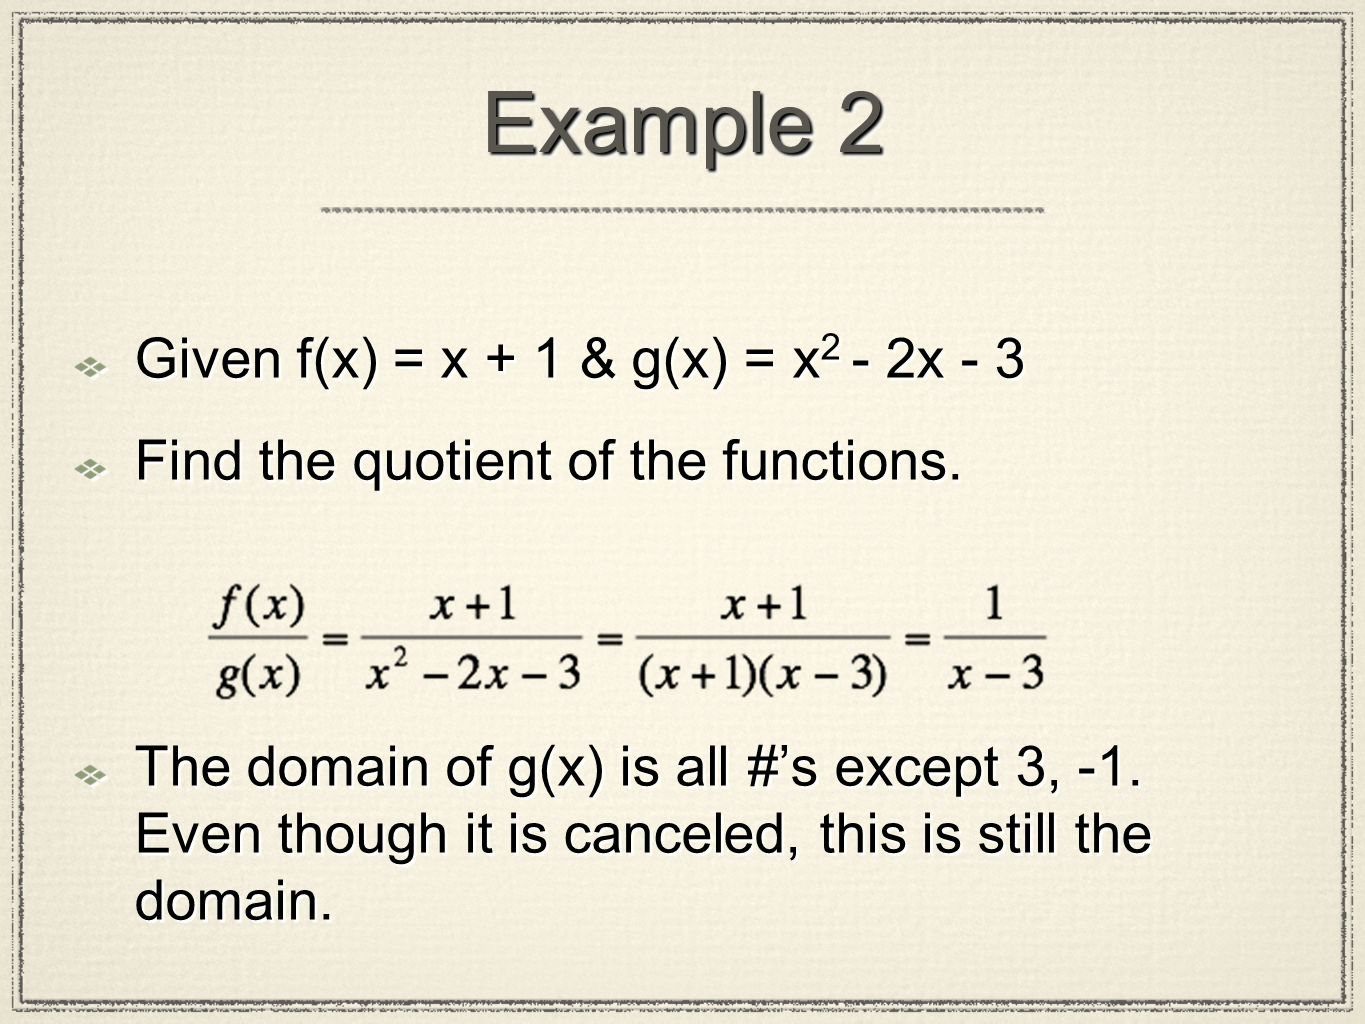 Example 2 Given f(x) = x + 1 & g(x) = x2 - 2x - 3